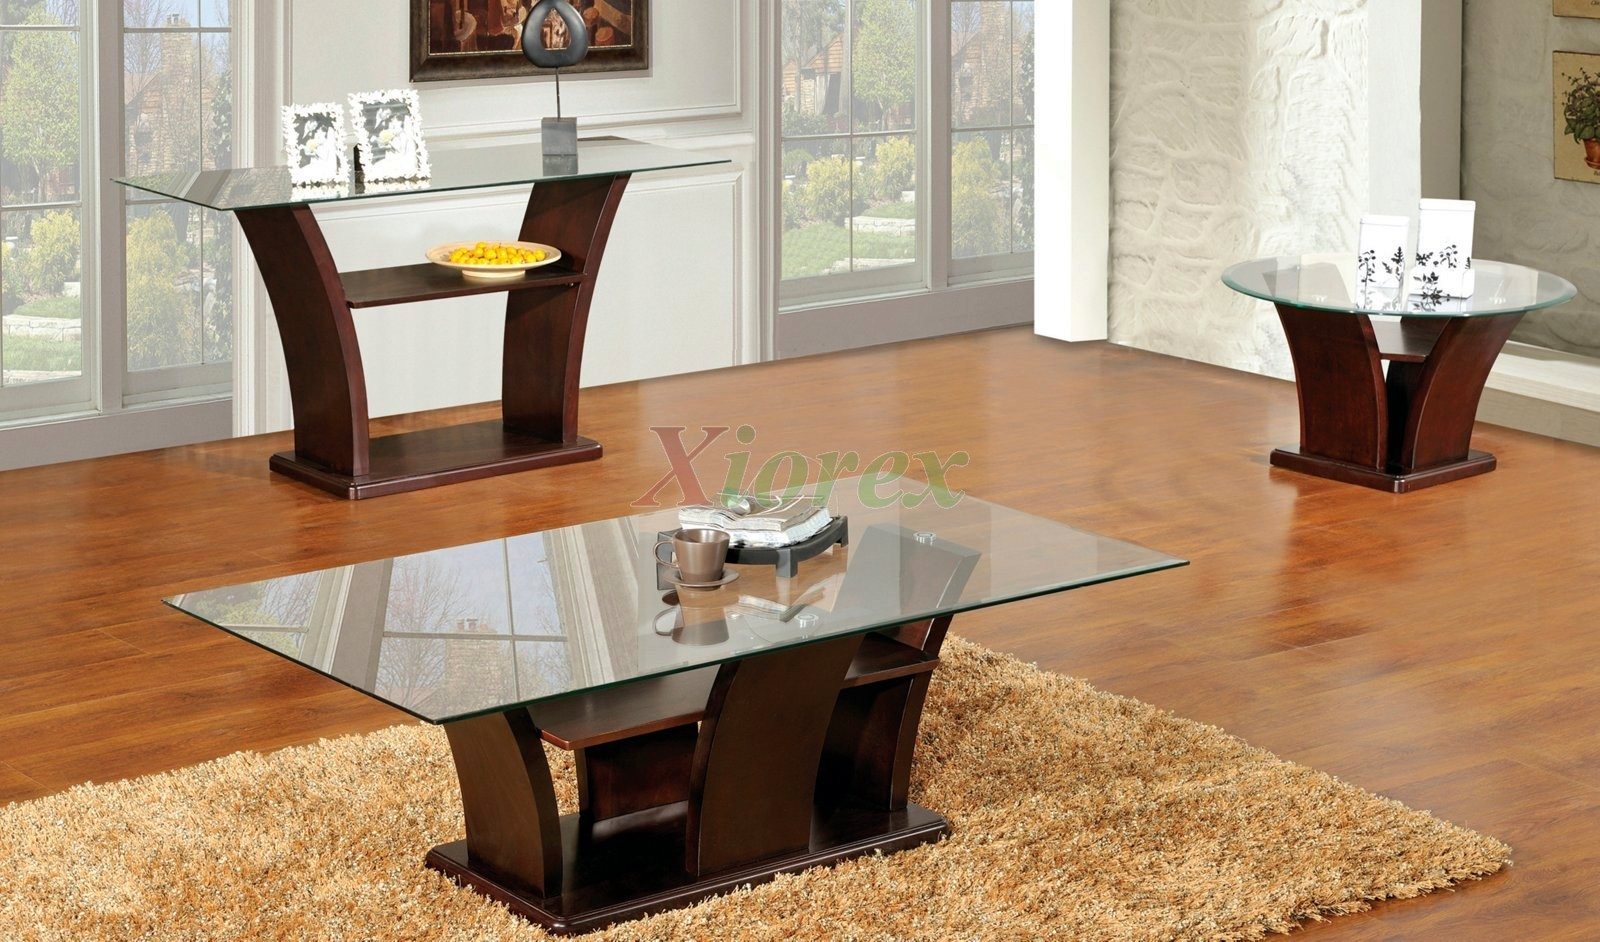 Columba 3 piece coffee table set with sofa console table xiorex Living room coffee table sets